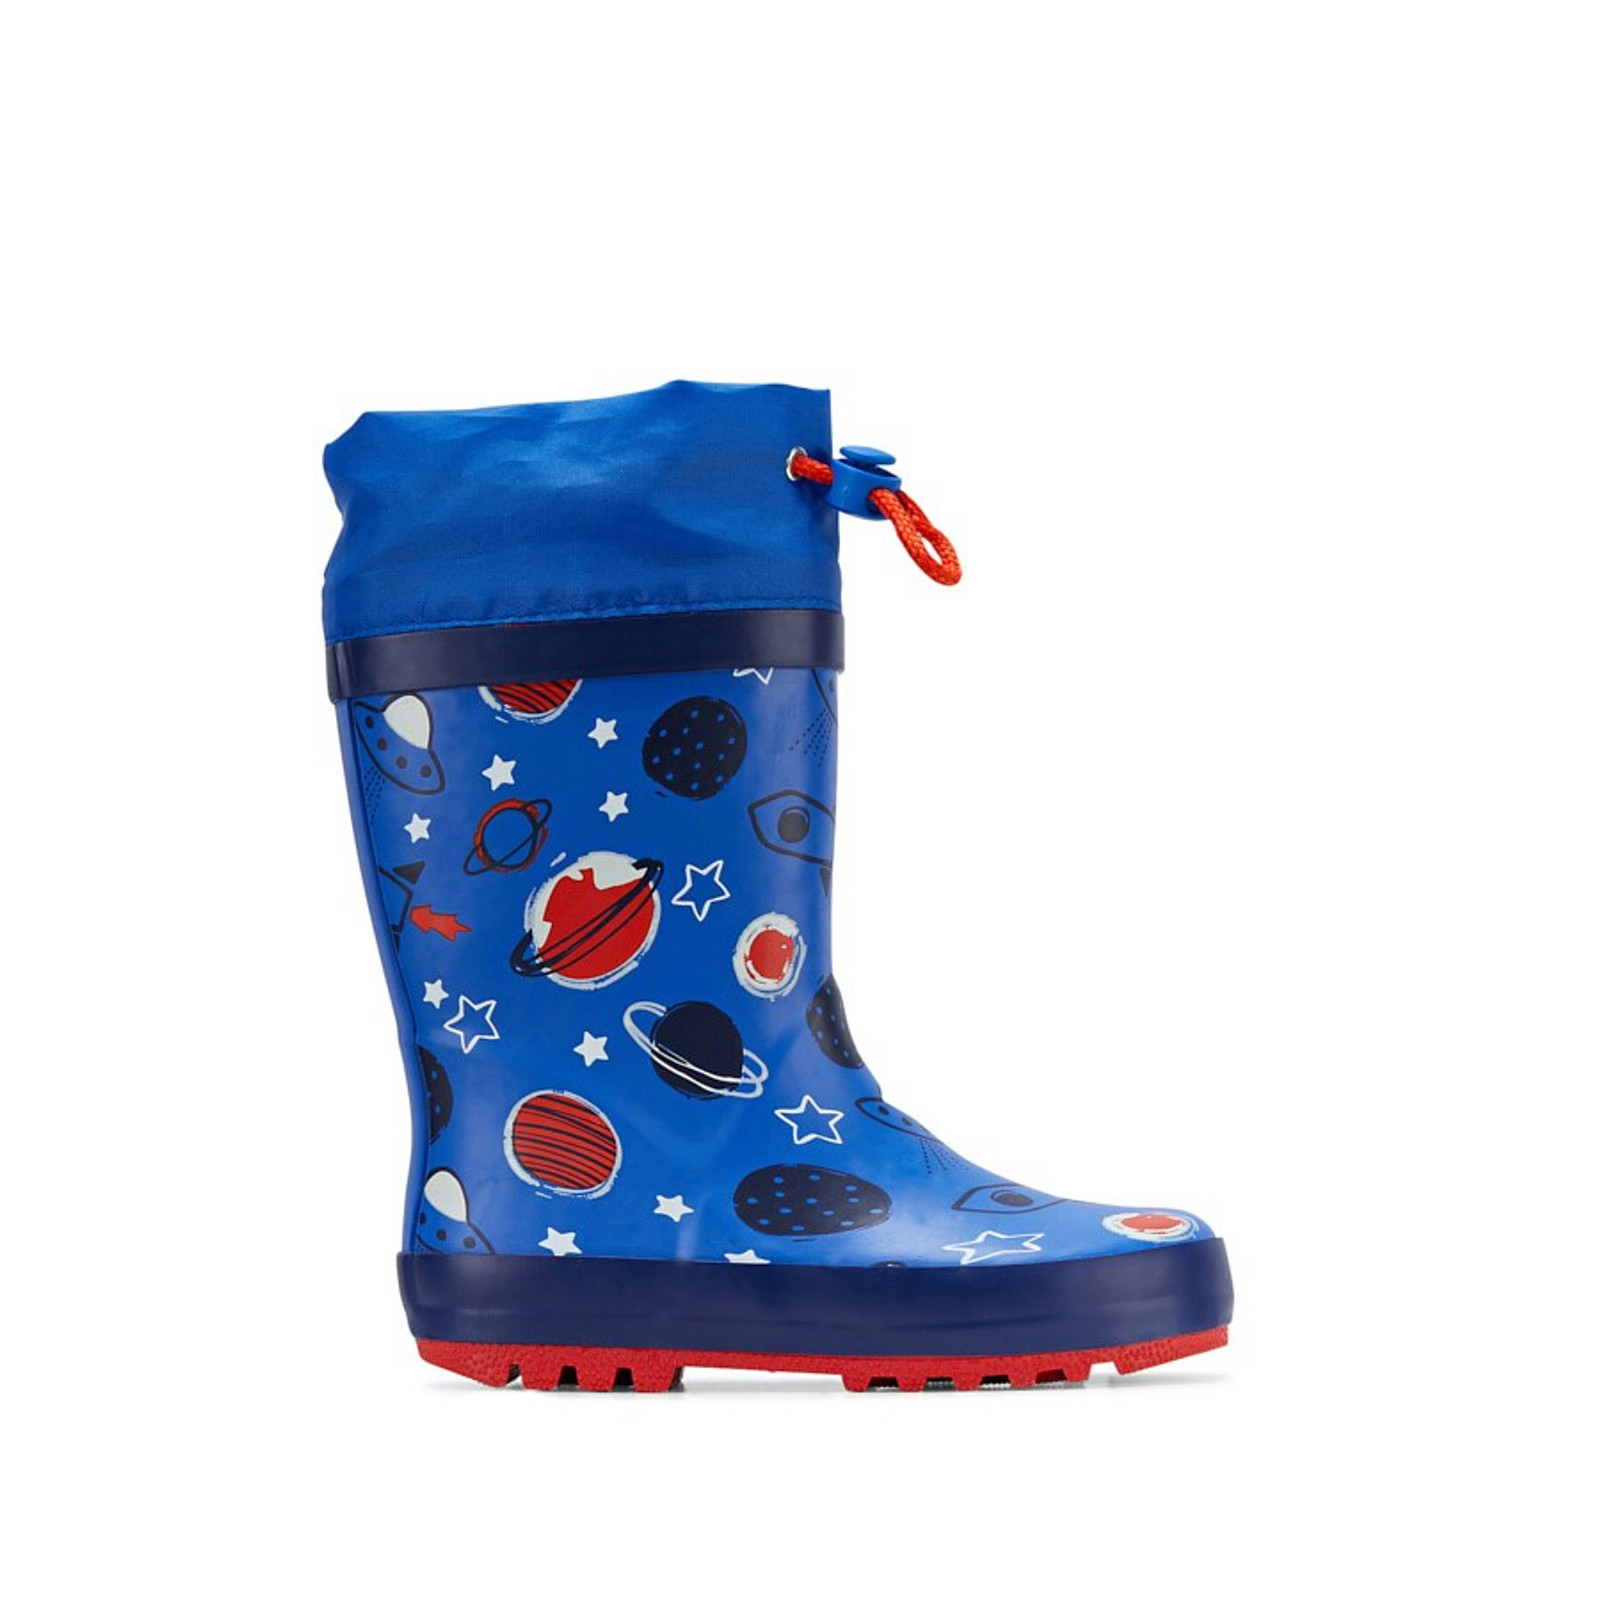 Shoe Warehouse UnisexChildren PUDDLES Blue/Red Planets